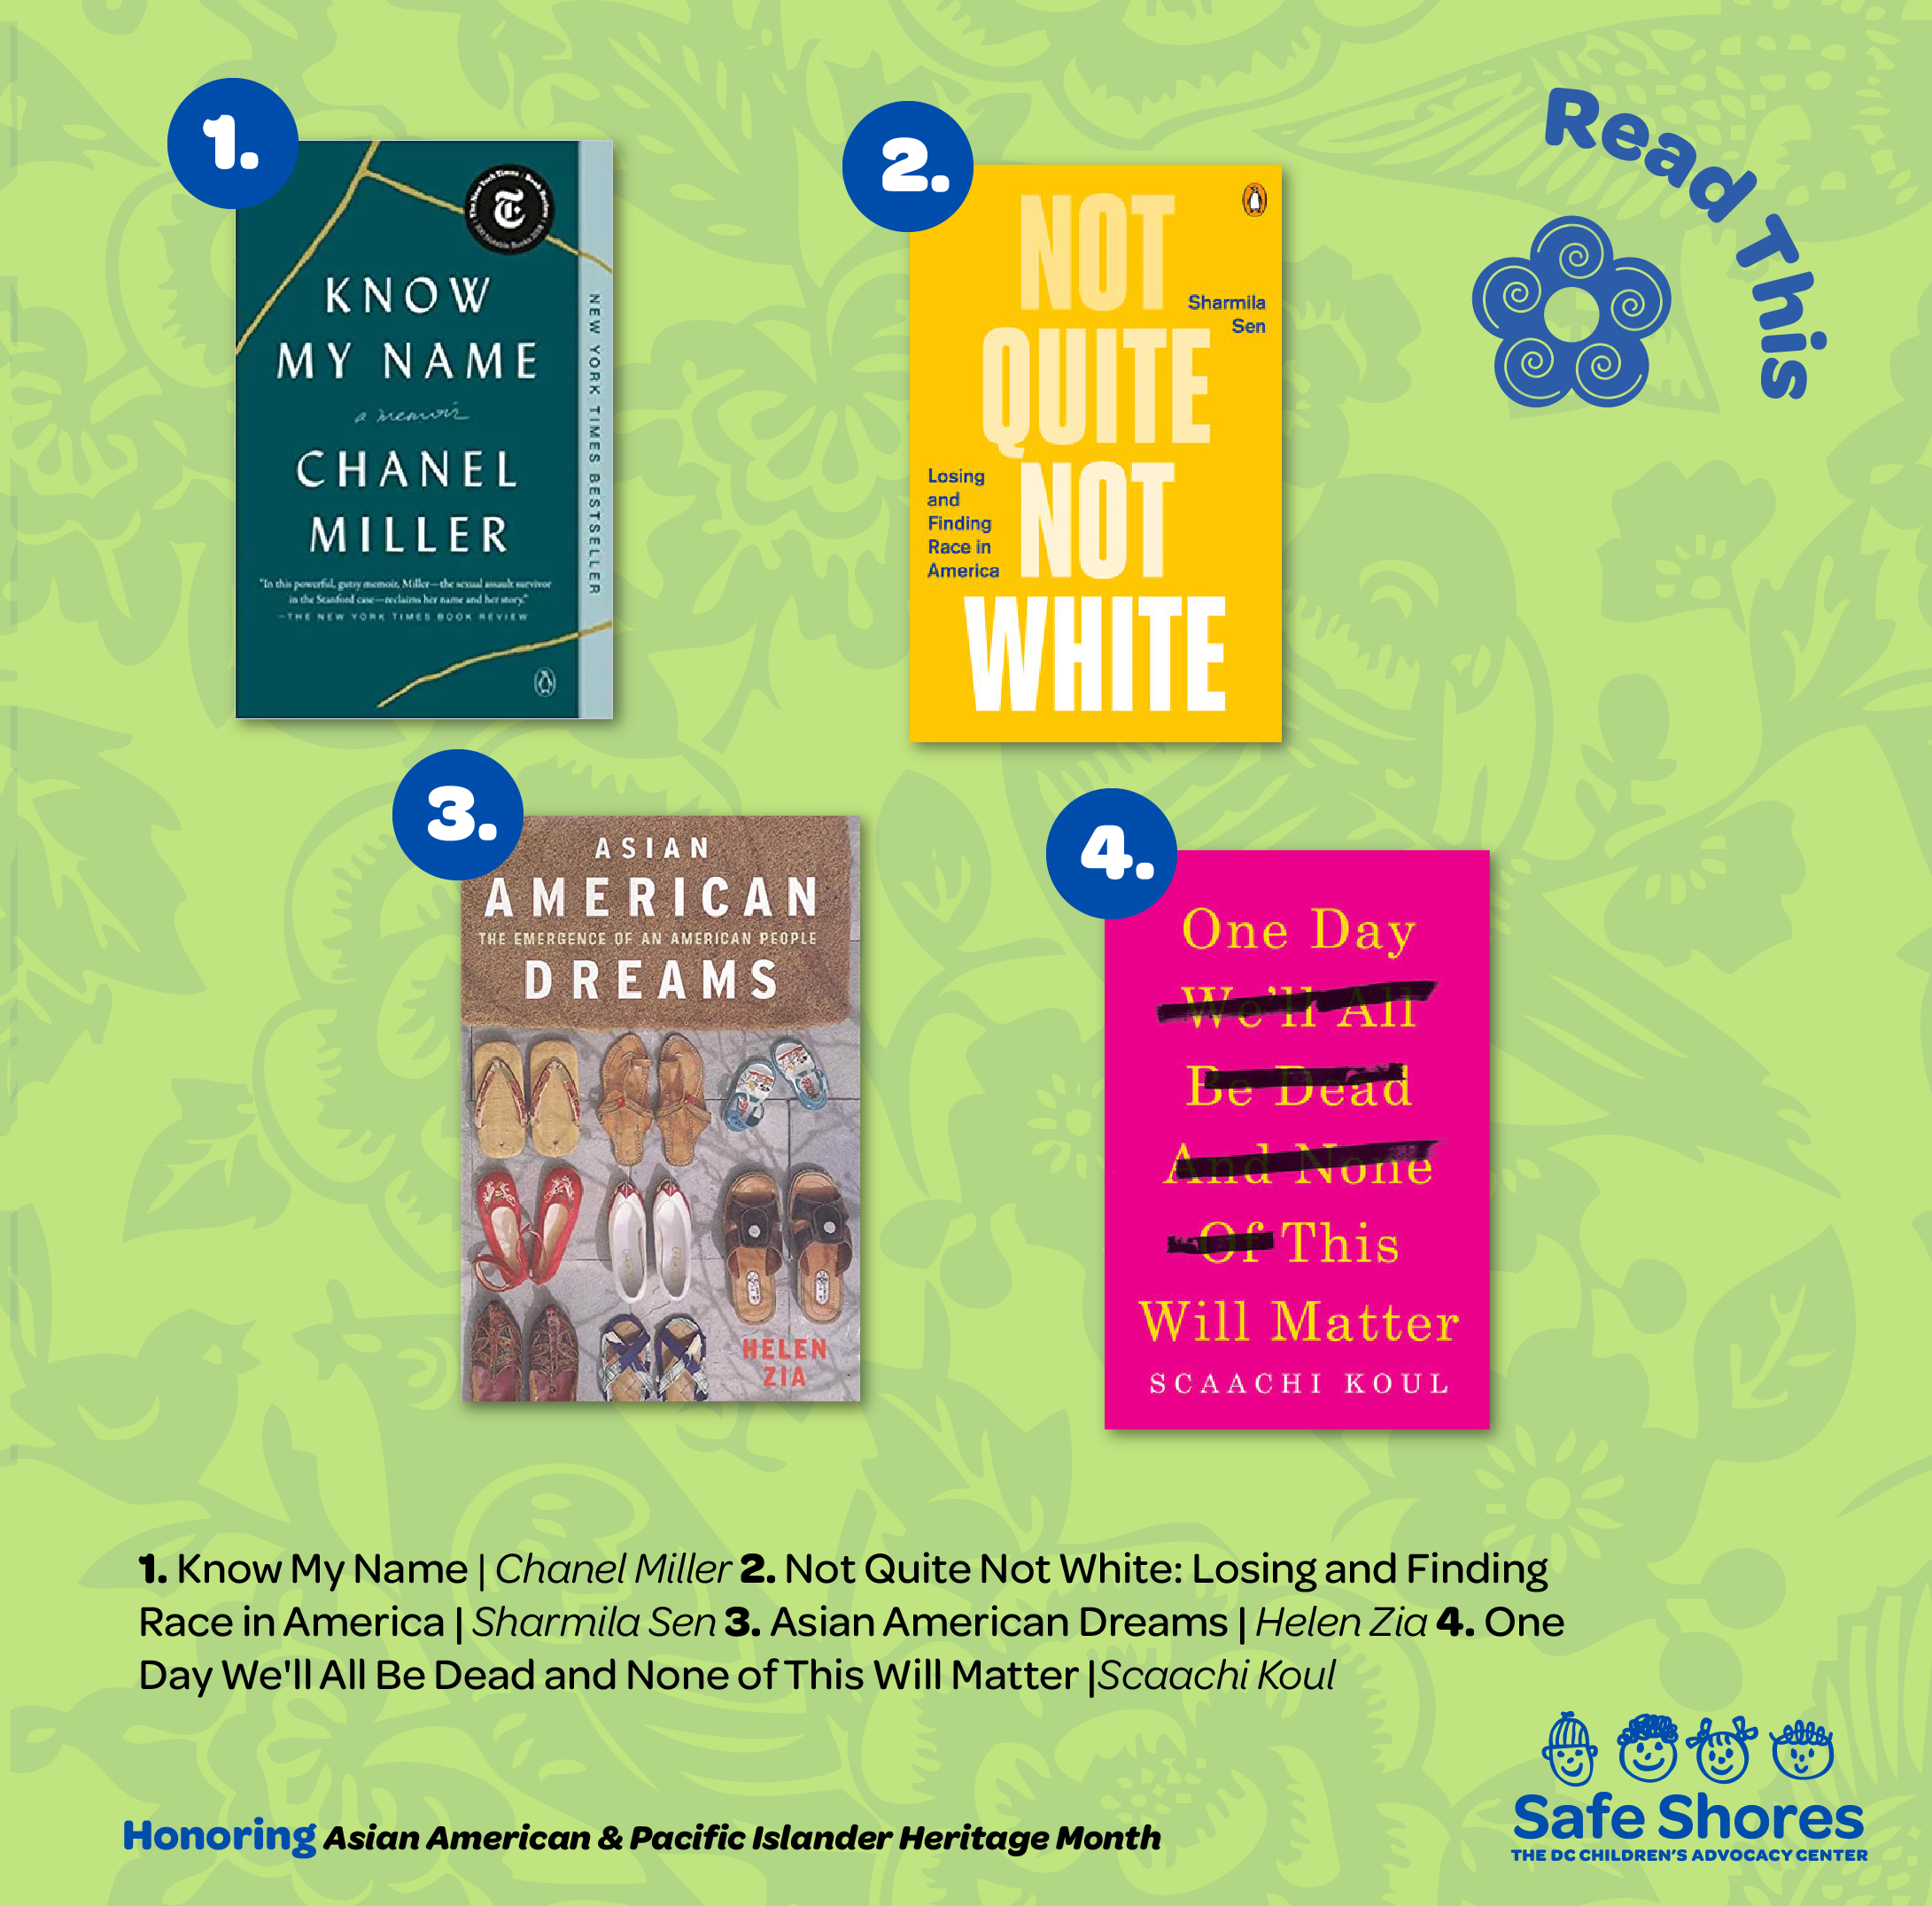 Books to read for Asian American and Pacific Islander Heritage. Books listed are: 1. Know My Name by Chanel Miller 2. Not Quite Not White: Losing and Finding Race in America by Sharmila Sen 3. 5. AsianAmerican Dreams: The Emergence of an American People by Helen Zia 4. One day We'll All Be Dead and None of This Will Matter: Essays by Scaachi Koul